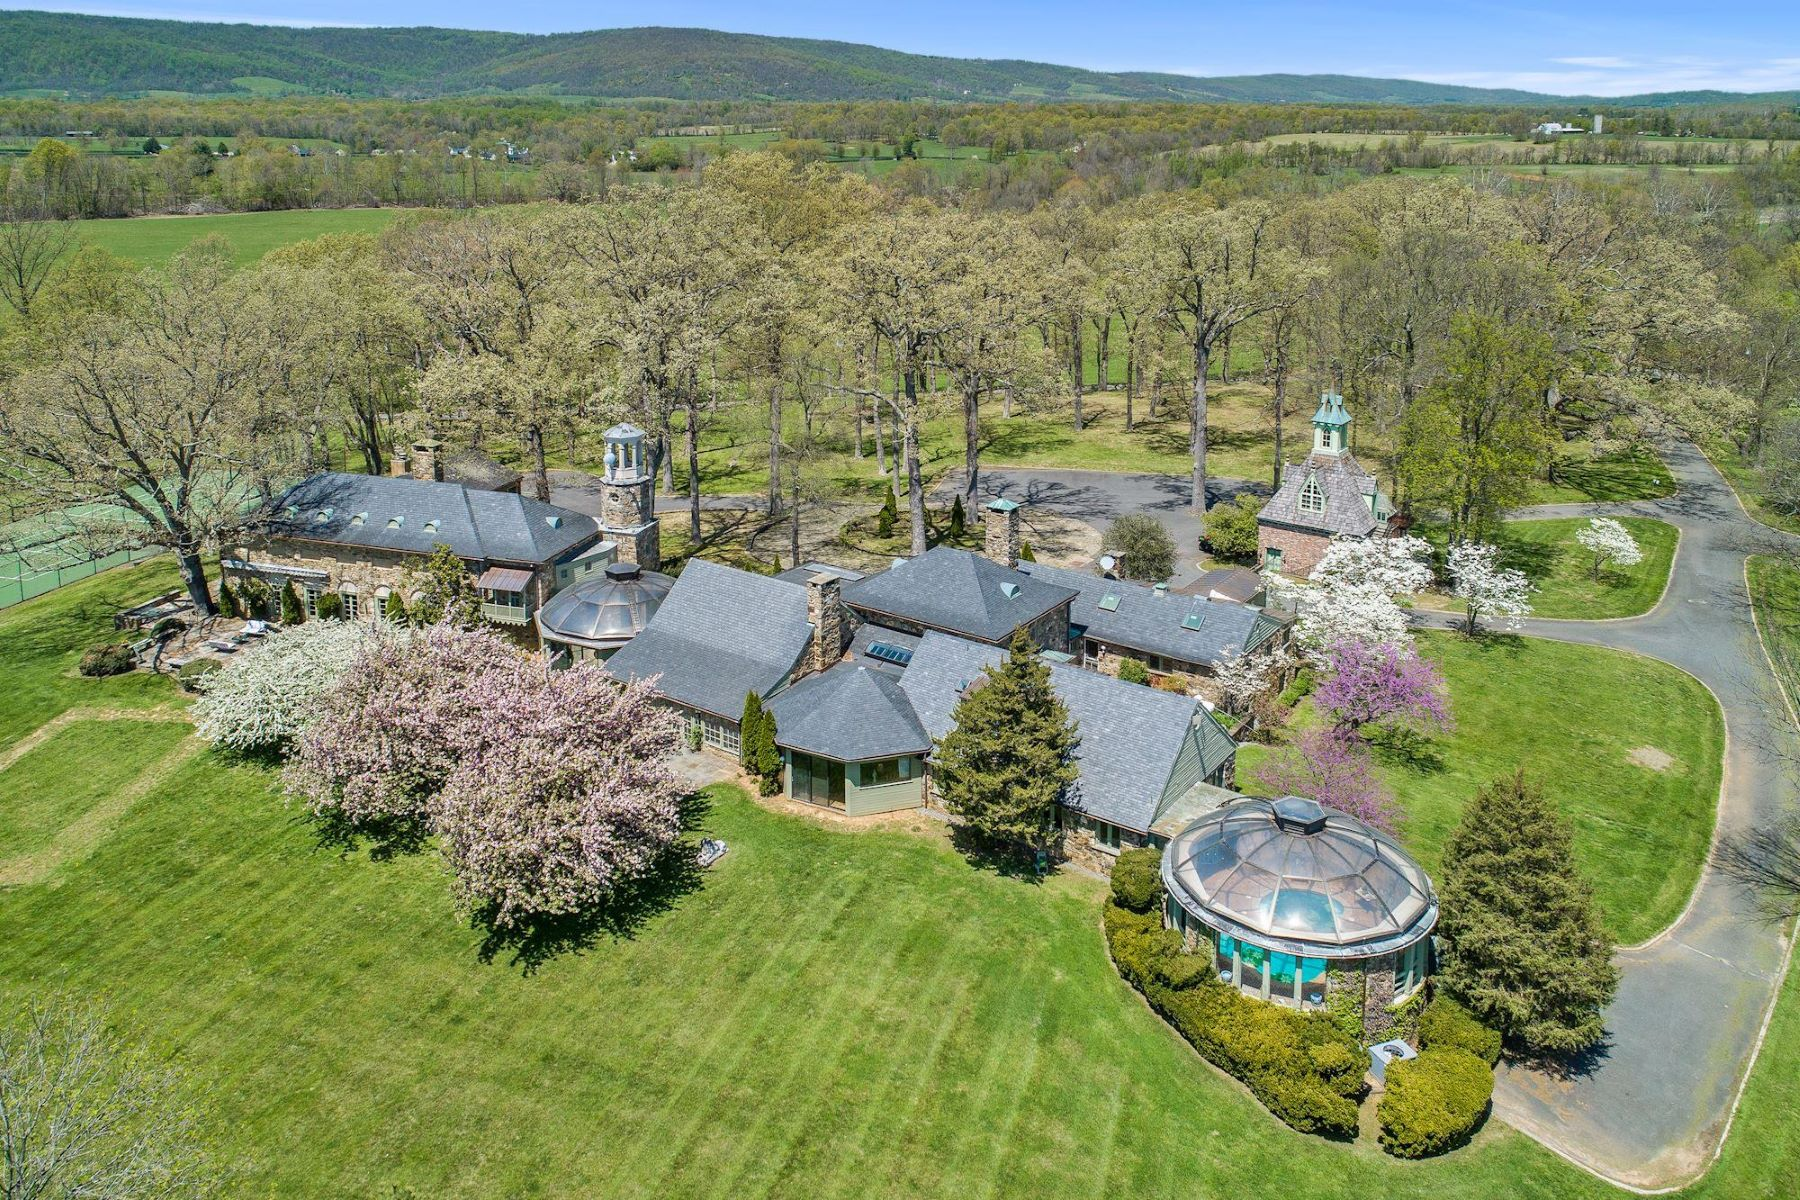 Single Family Homes for Sale at Sprawling Equestrian Estate 33807 Archbold Ln Upperville, Virginia 20184 United States